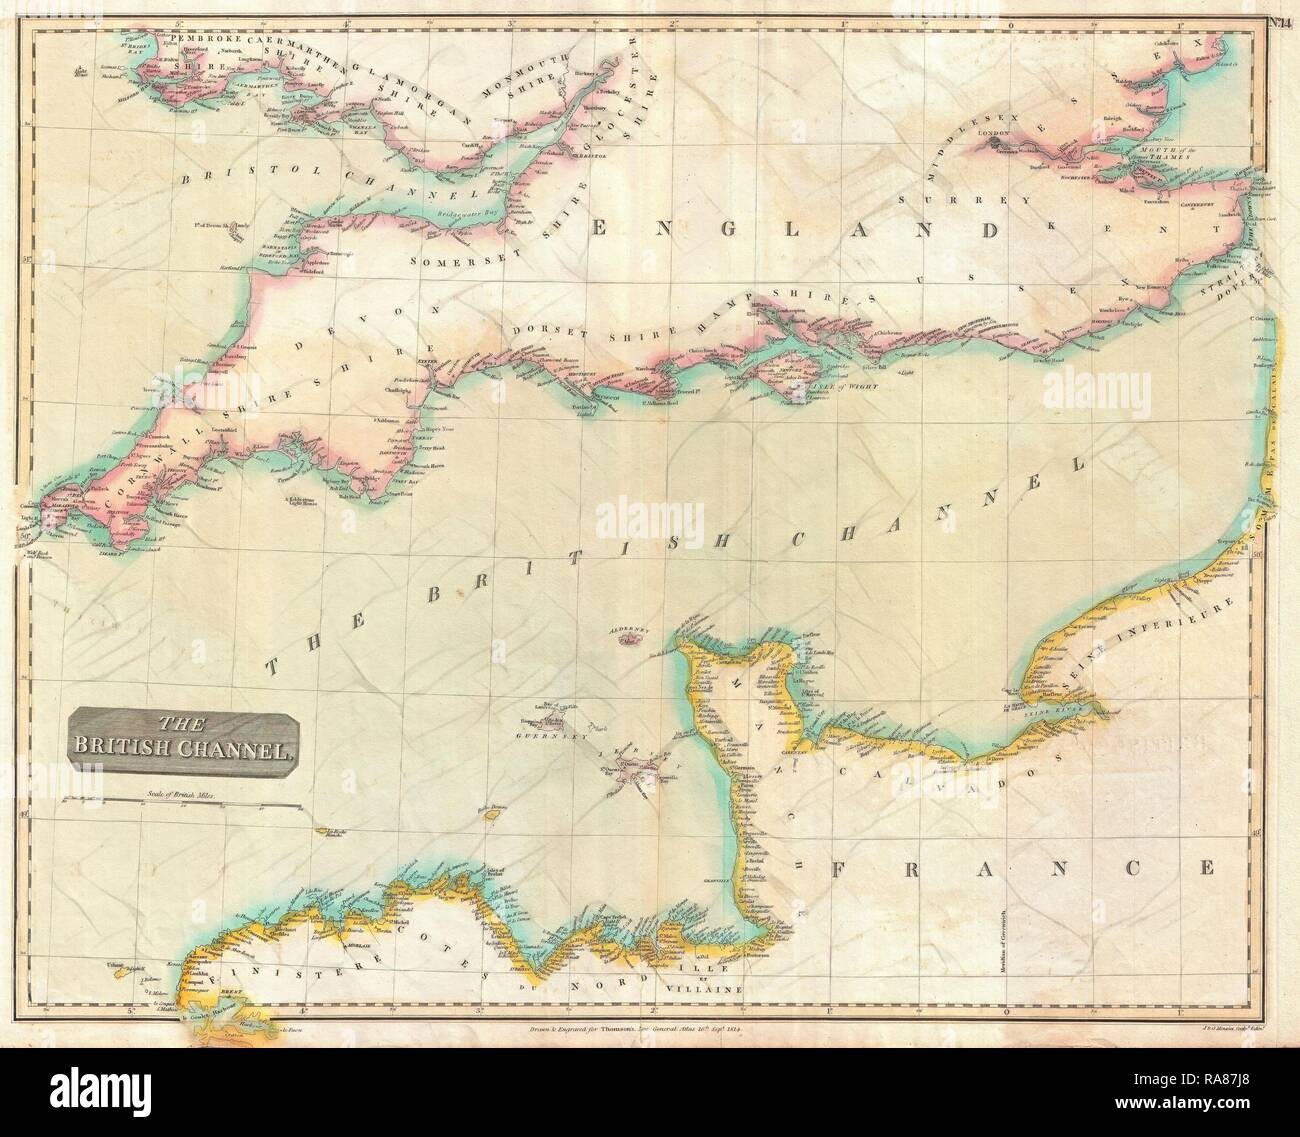 English Channel Map Stock Photos & English Channel Map Stock